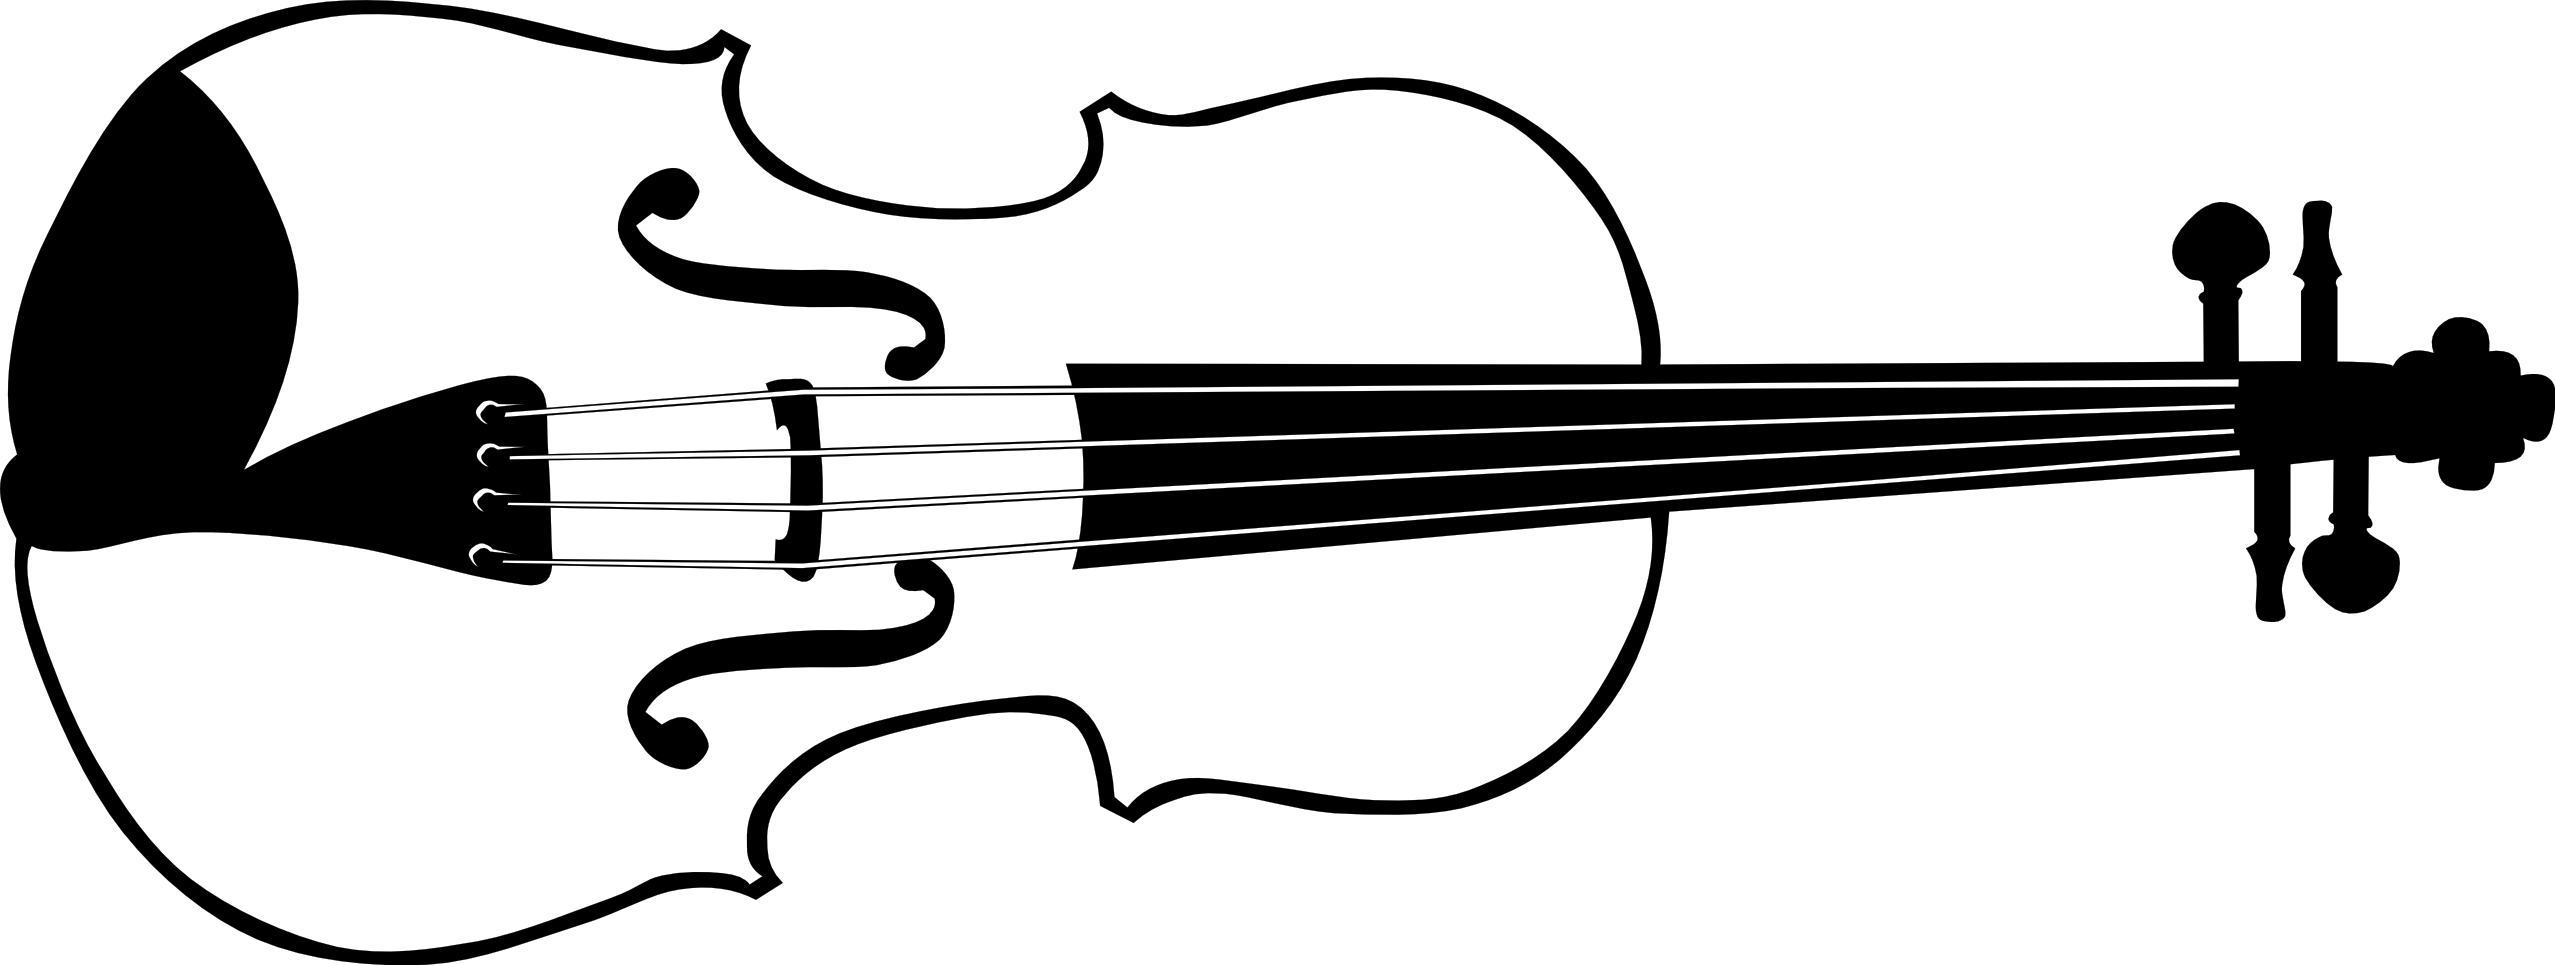 Music with a cross clipart graphic black and white download Free Black And White Music Pictures, Download Free Clip Art, Free ... graphic black and white download